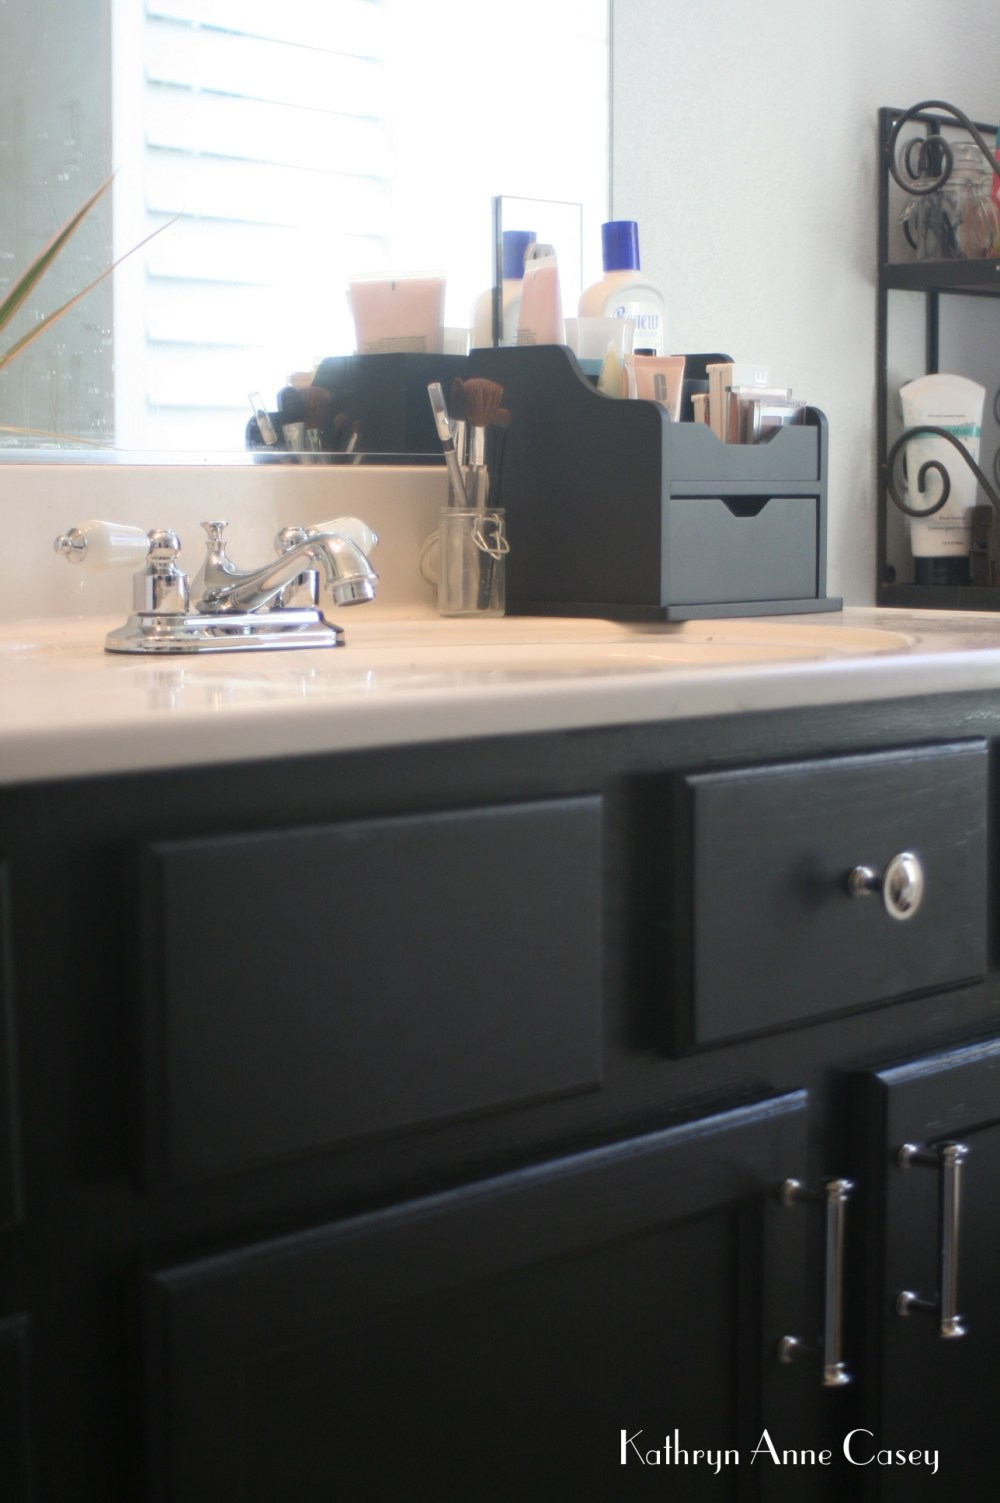 Photo of at home bathroom countertop